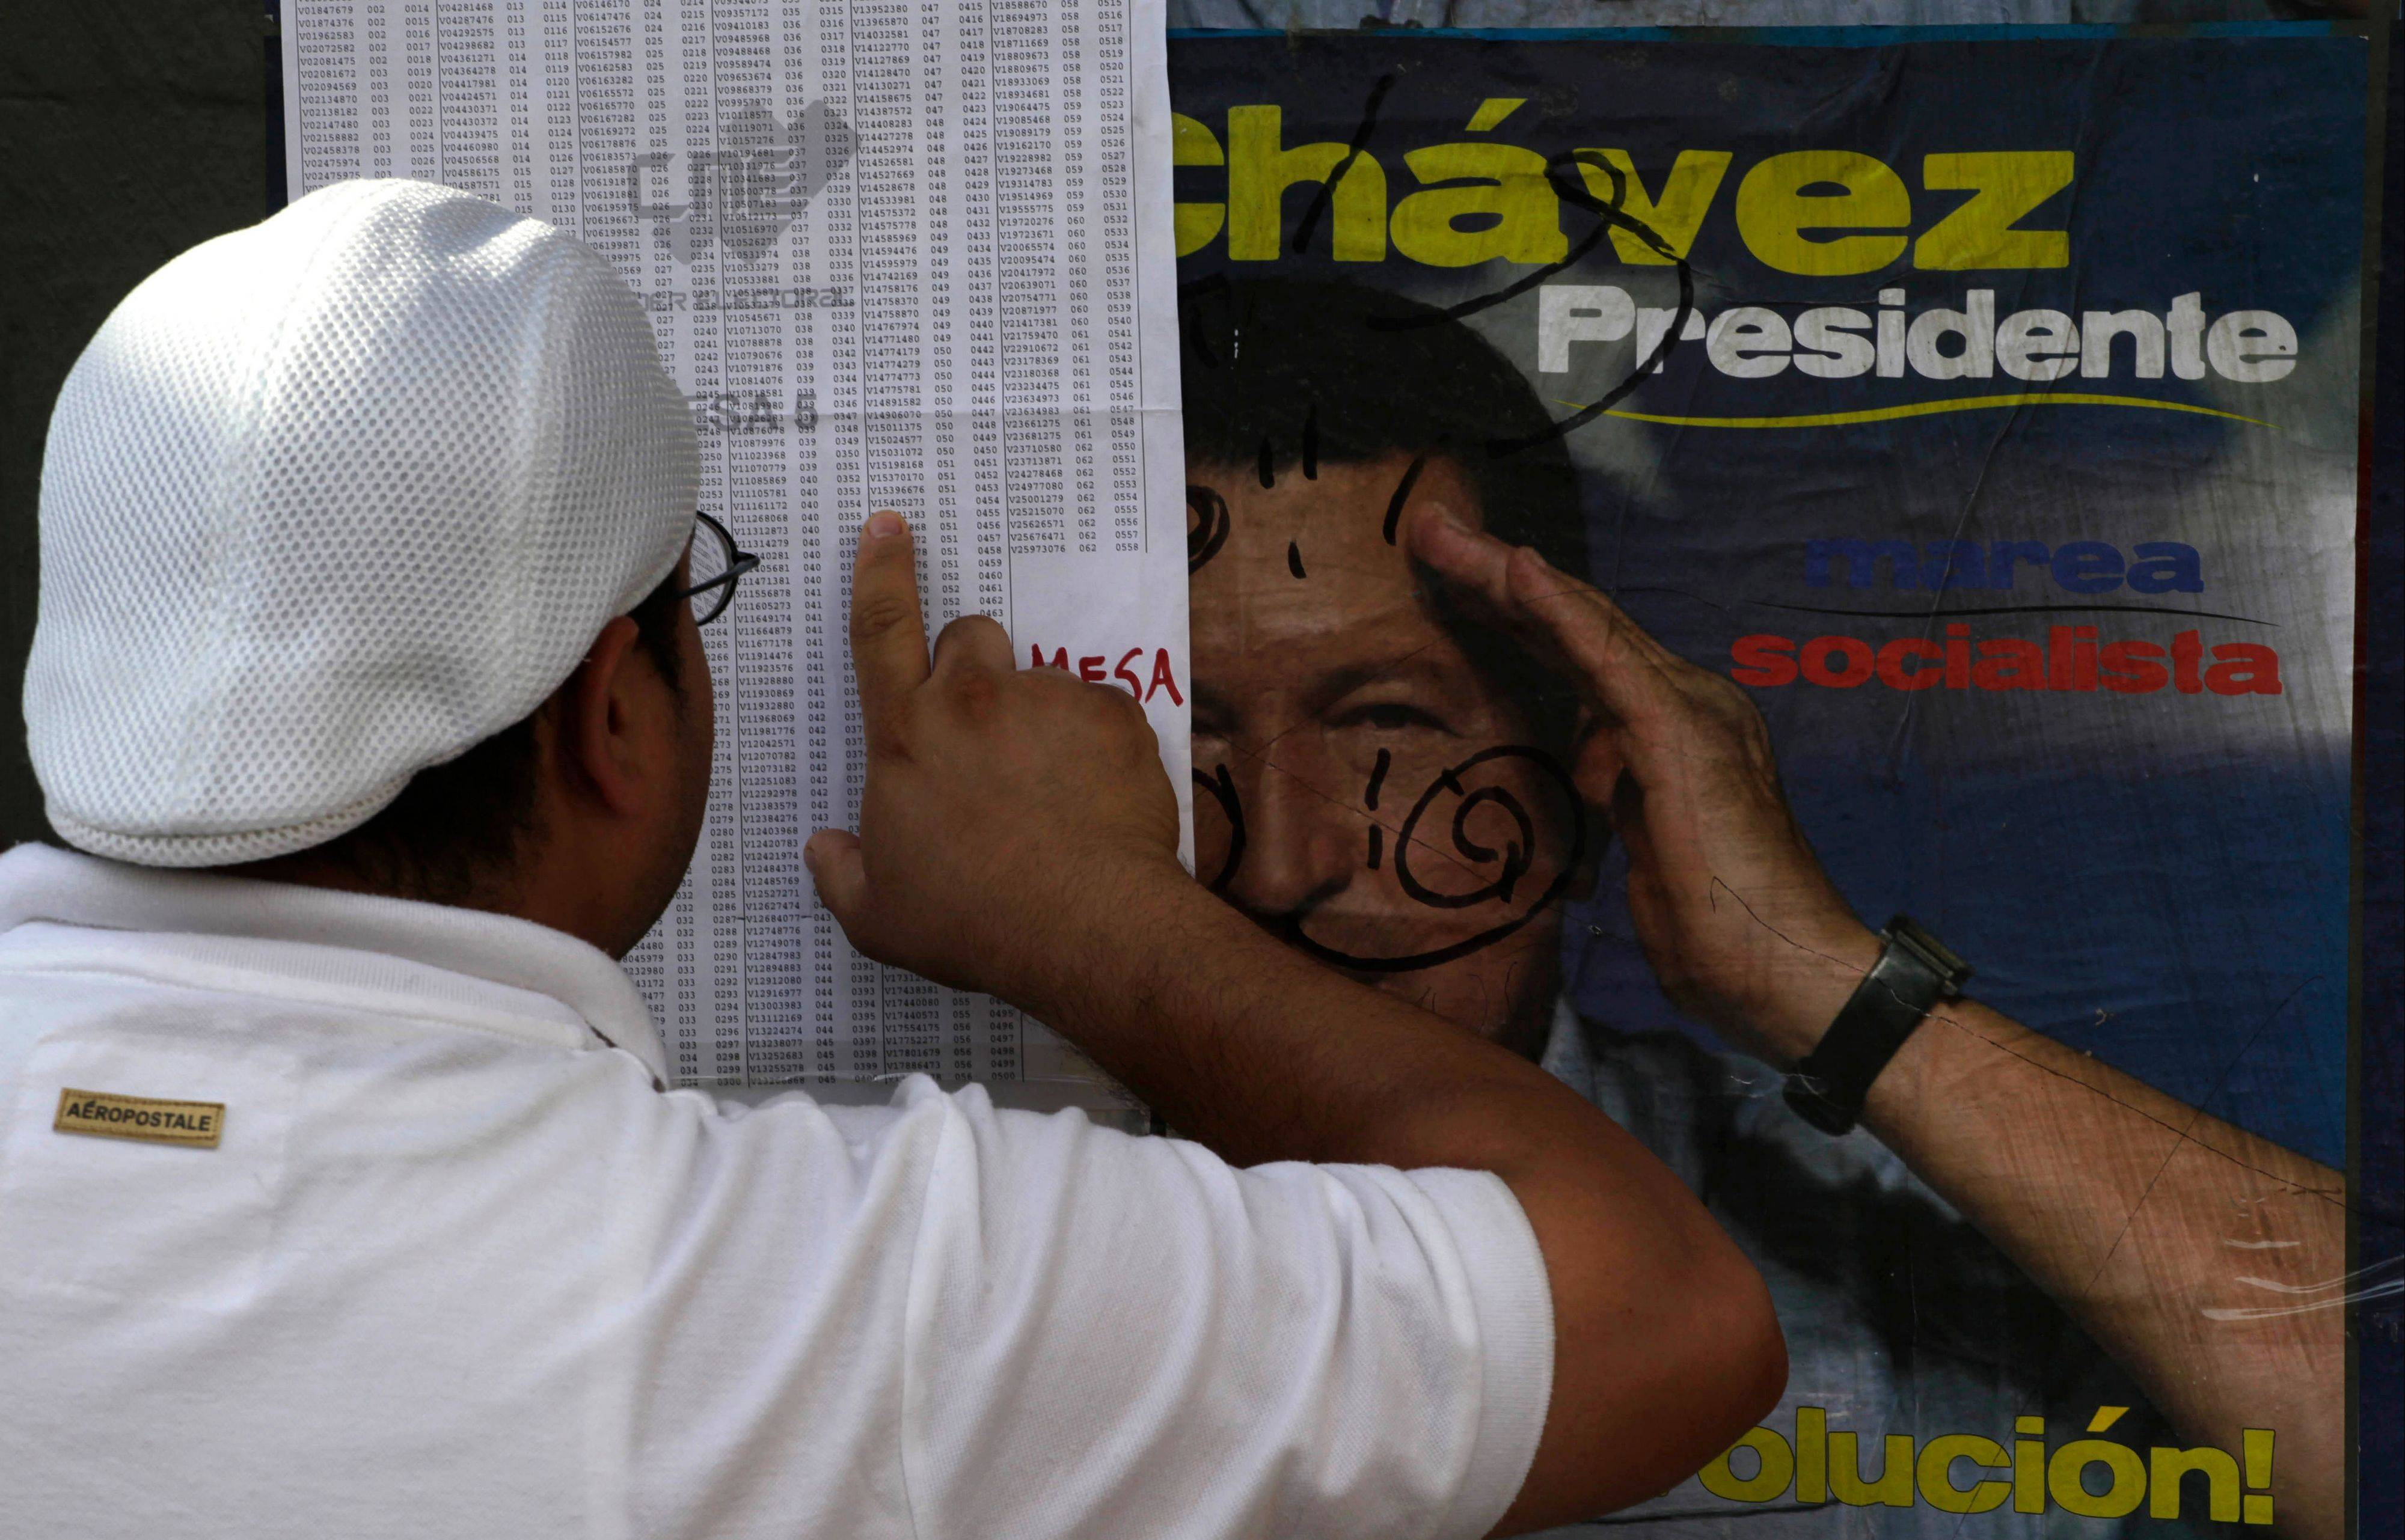 A voter looks for his name on a list, which covers an election campaign sign of President Hugo Chavez, at a polling station during the presidential election in the Petare neighborhood of Caracas, Venezuela, Sunday. President Hugo Chavez is running for re-election against opposition candidate Henrique Capriles.